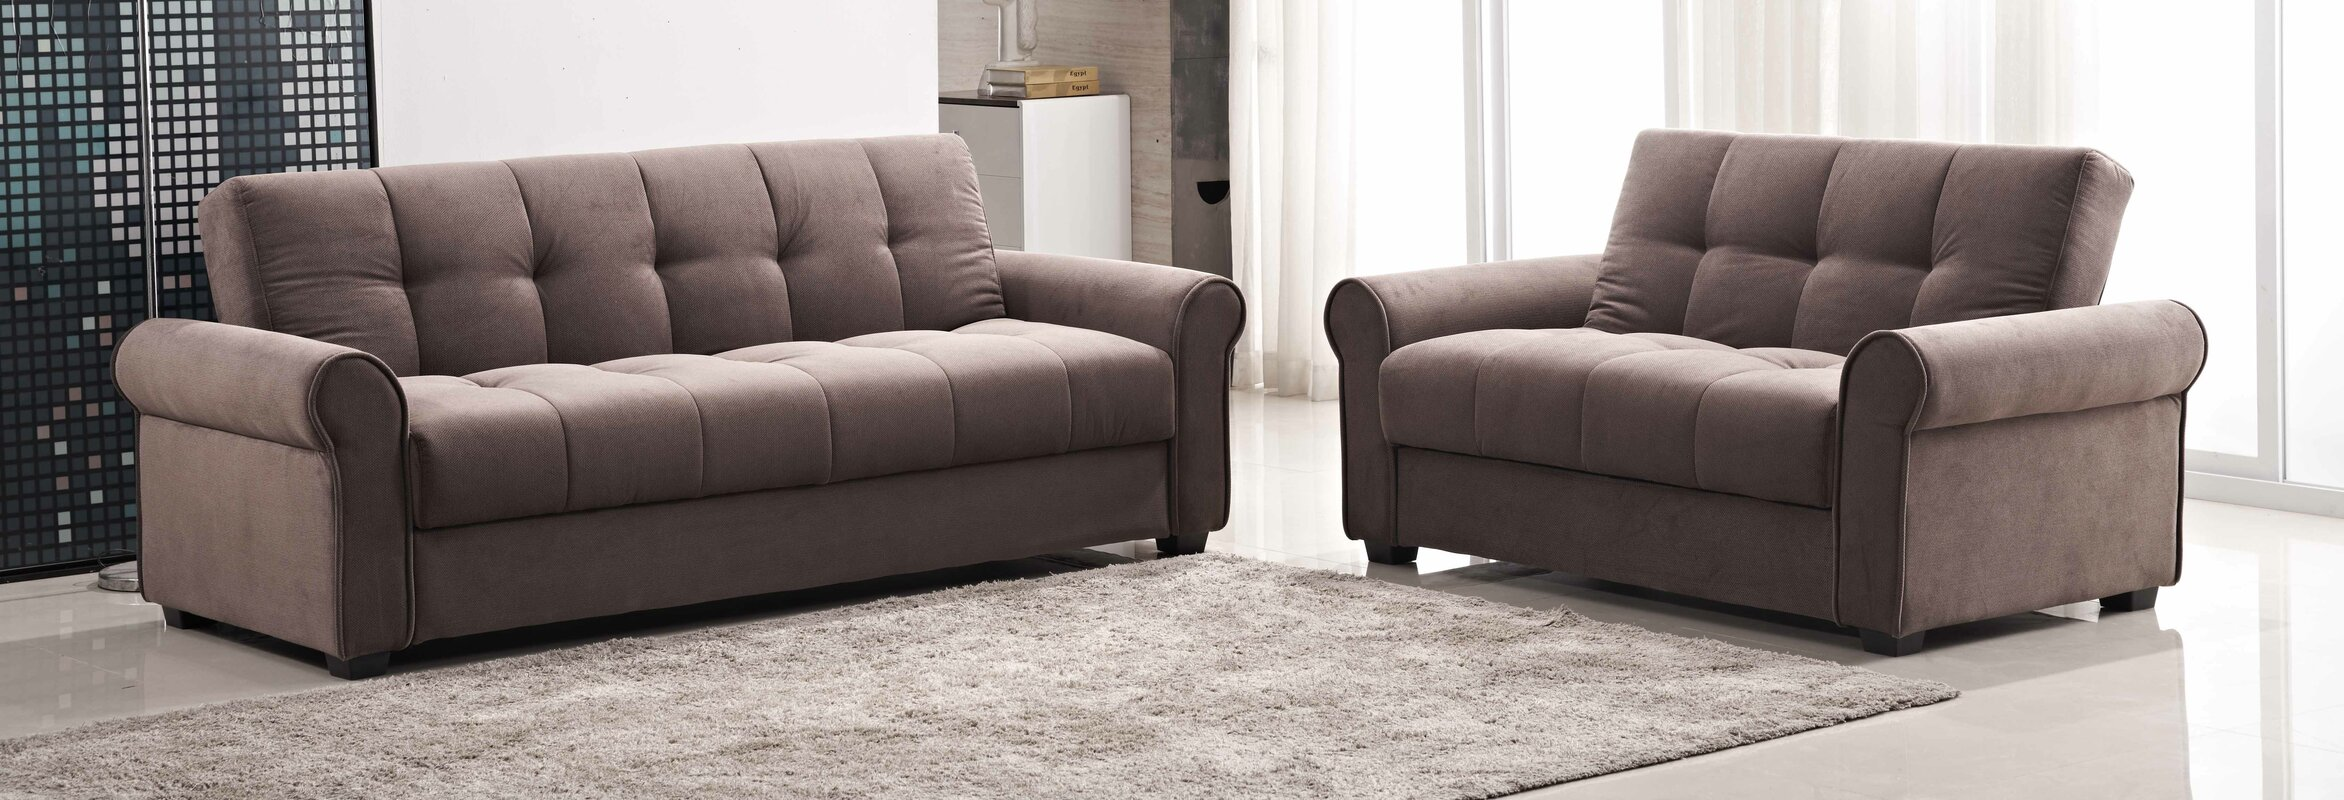 Russell 2 Piece Living Room Set Part 62